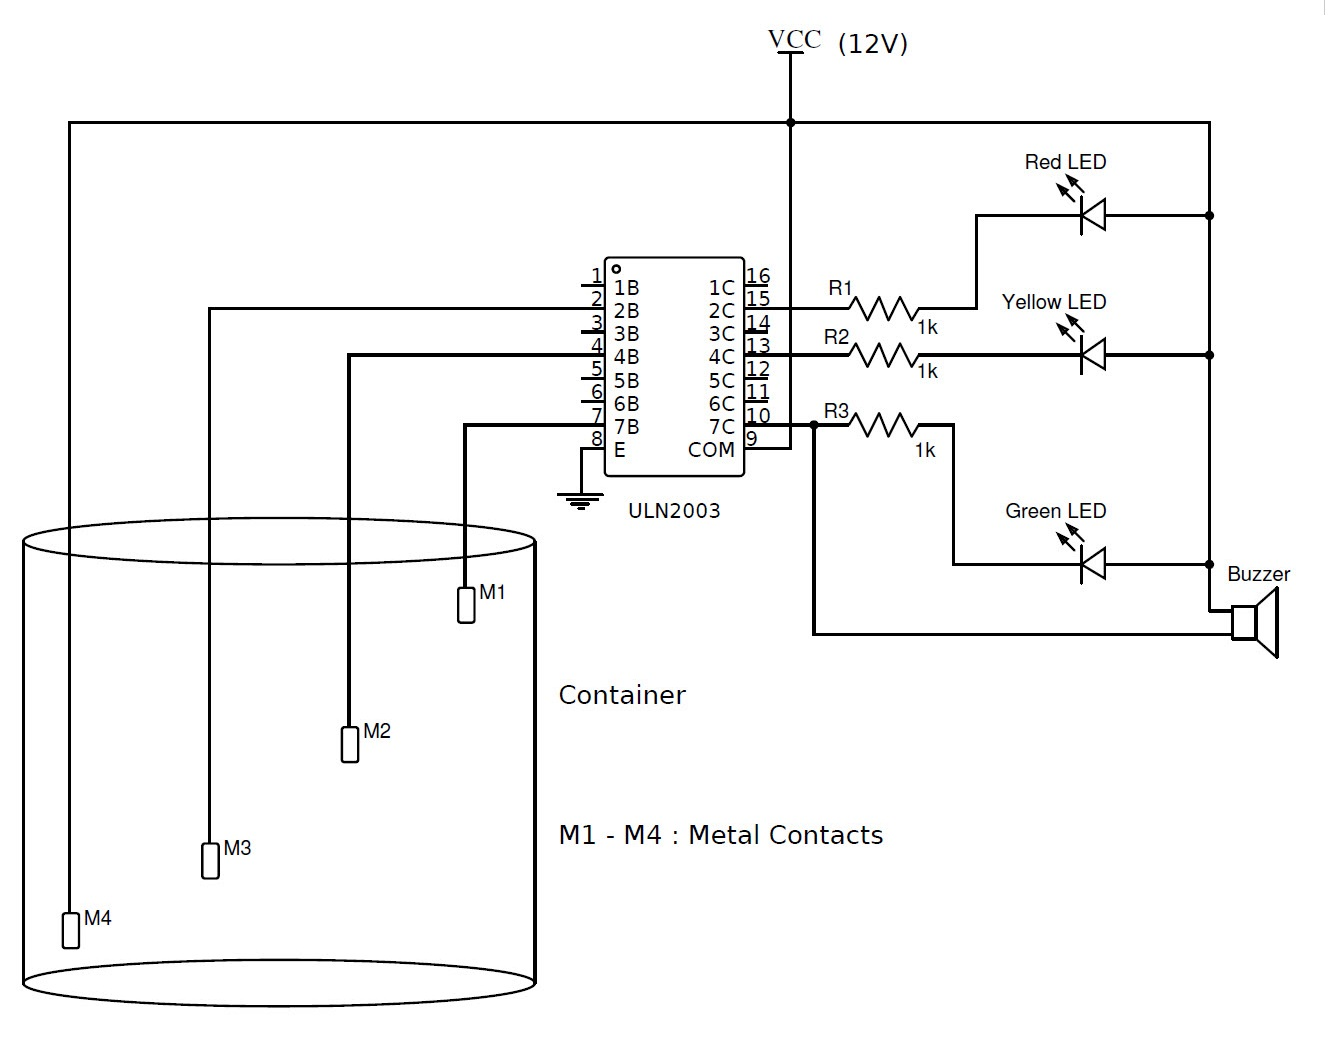 simple water level indicator with alarm 3 tested circuits rh electronicshub org circuit diagram of water level indicator using arduino numerical water level indicator circuit diagram